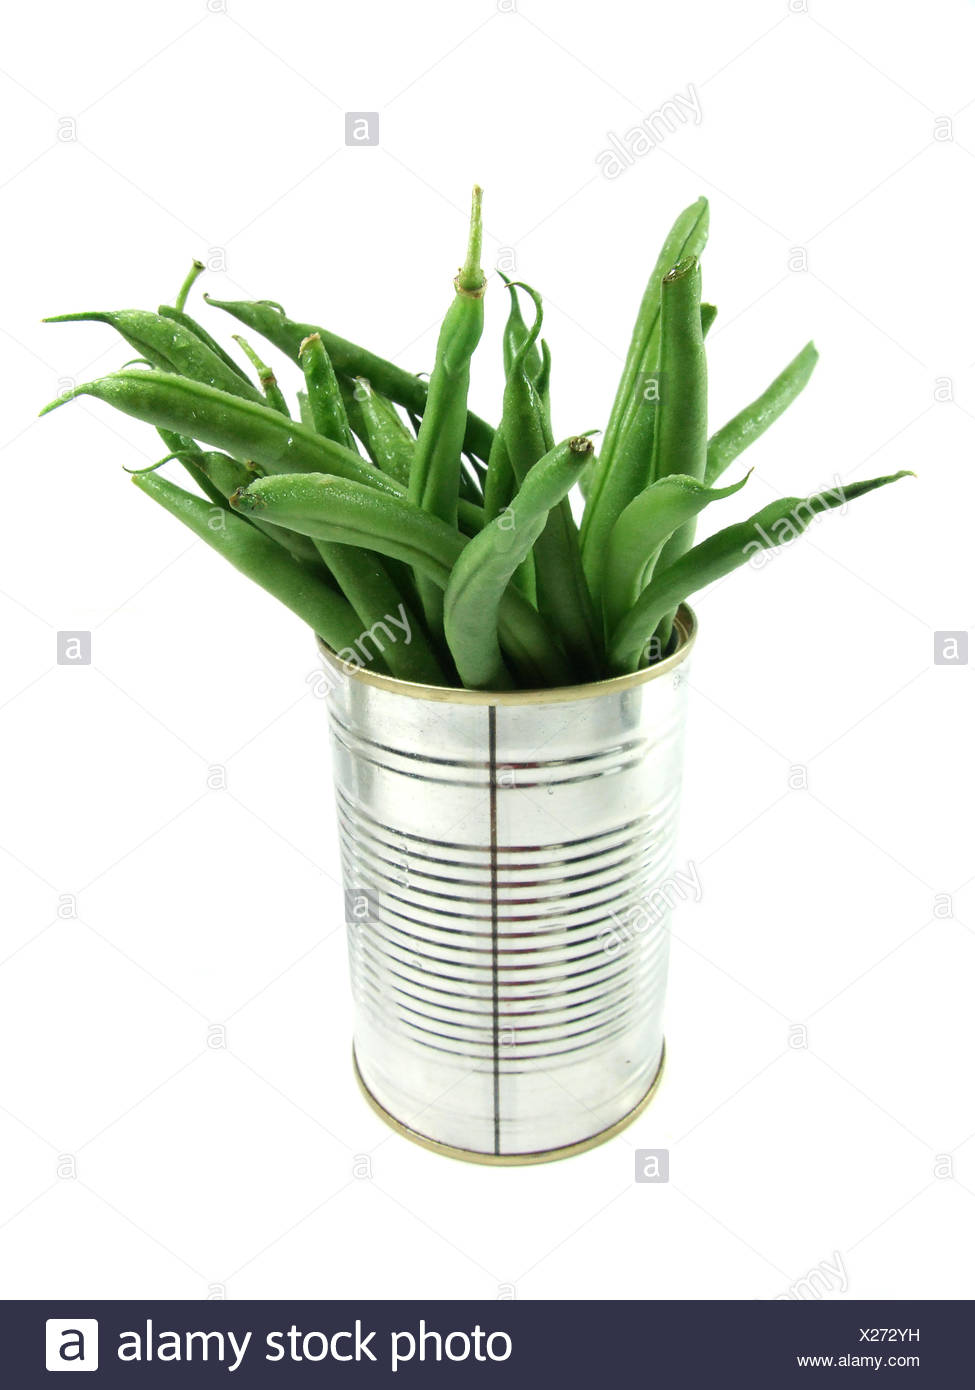 beans vegetable tins - Stock Image